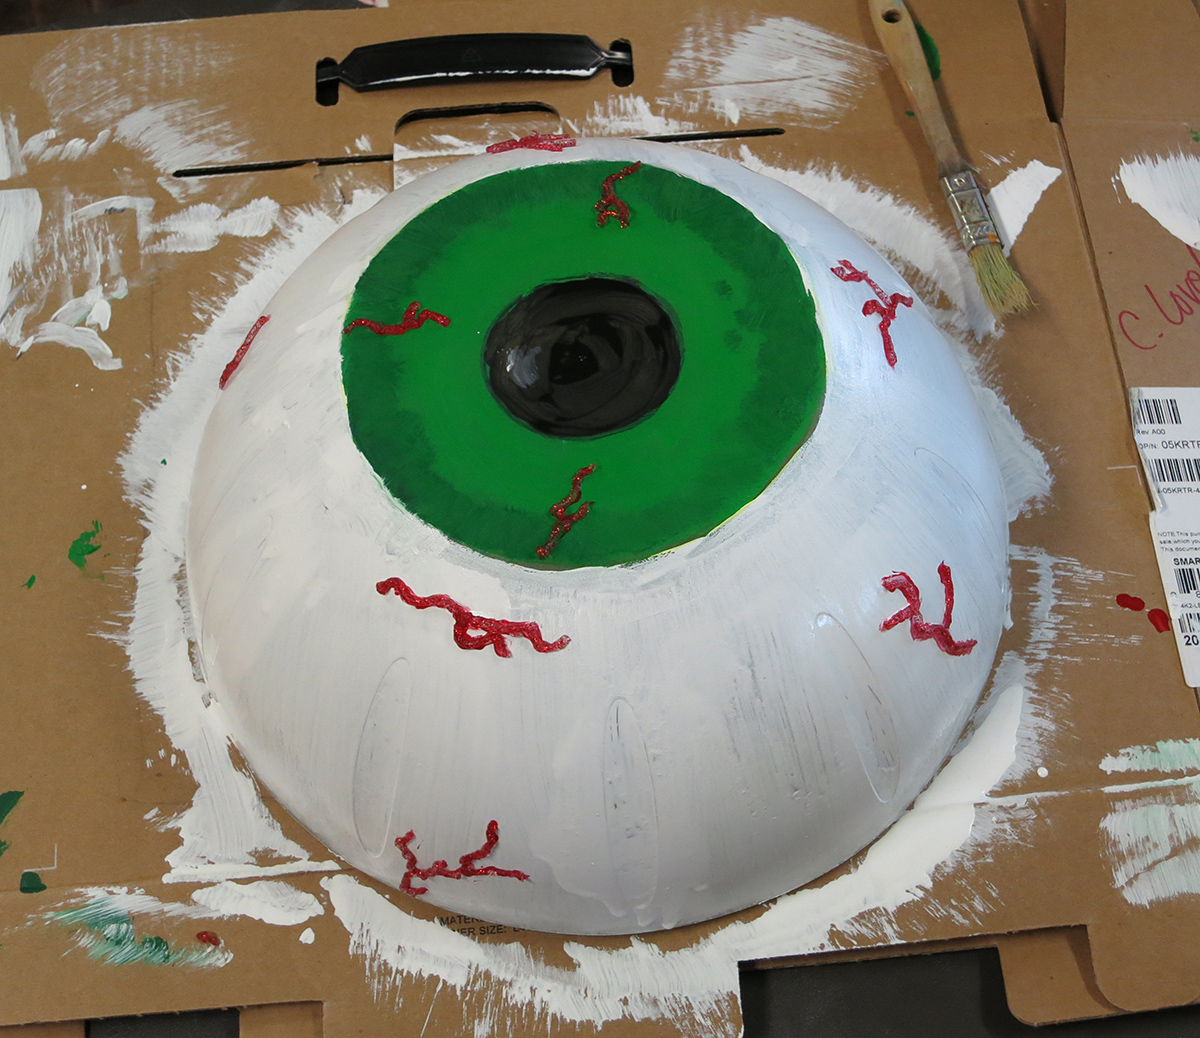 eyeball_closeup